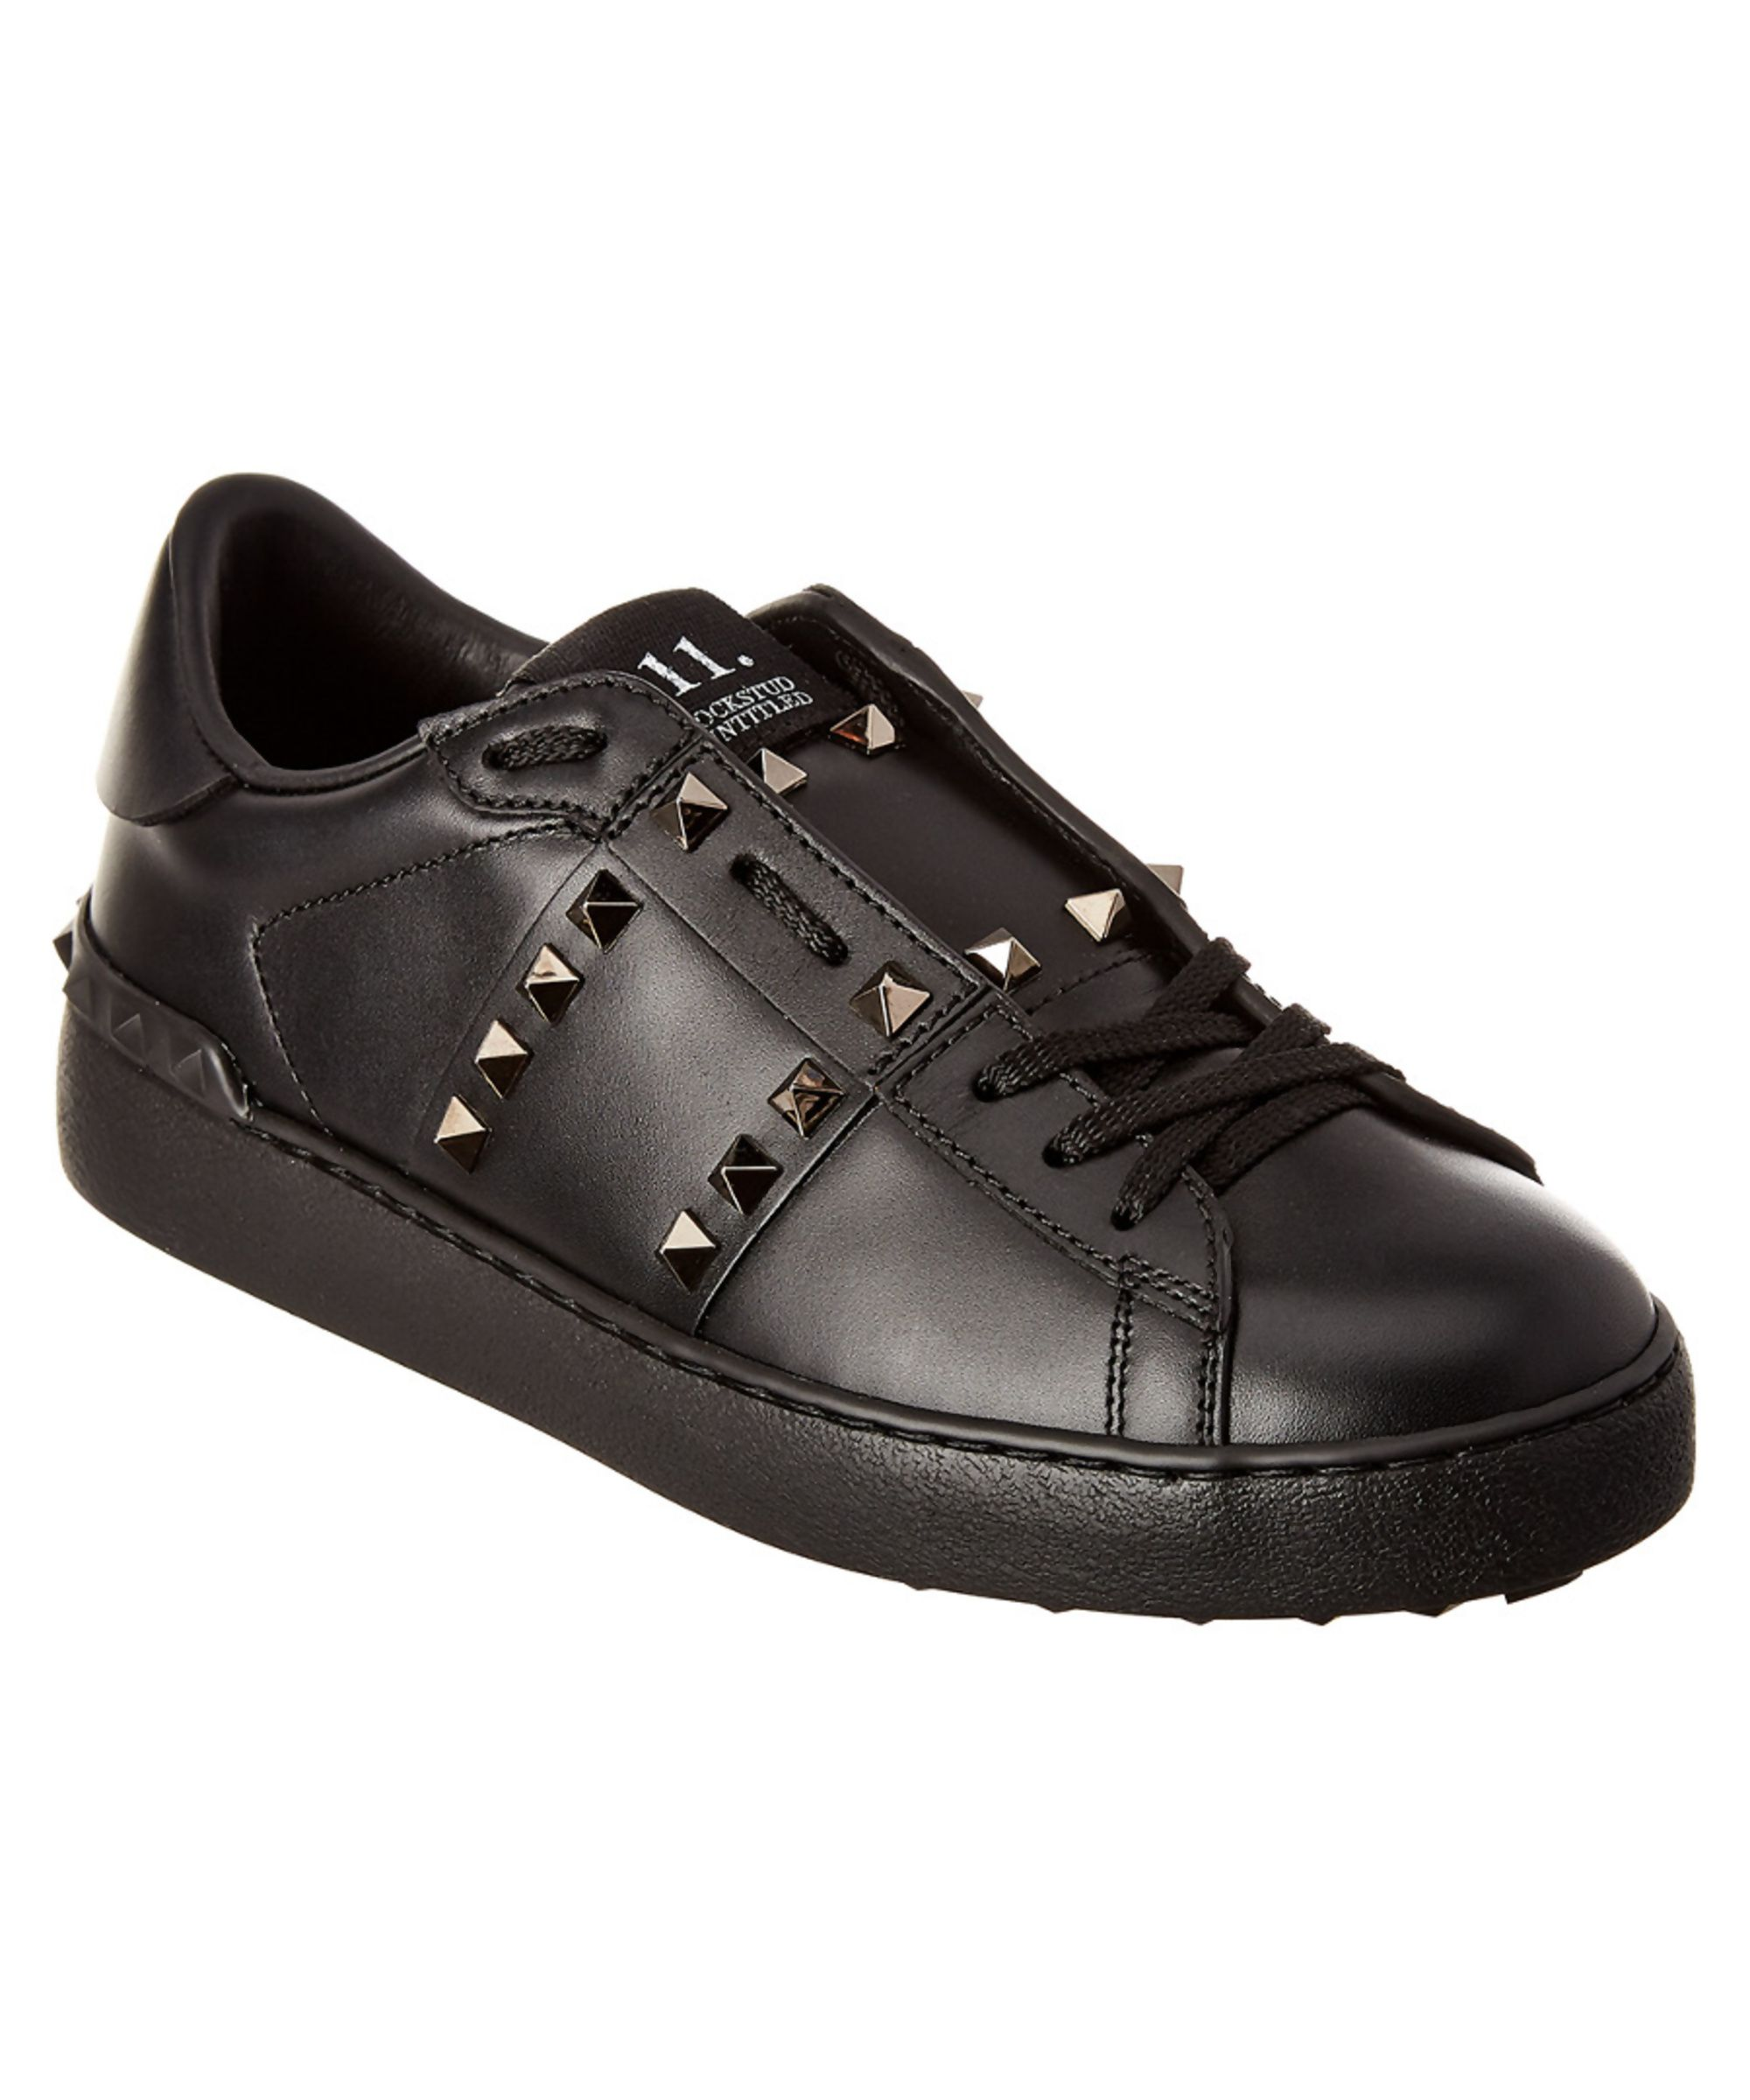 f879f09577b30 VALENTINO | Valentino Rockstud Untitled Noir Leather Sneaker #Shoes #Oxford  #VALENTINO